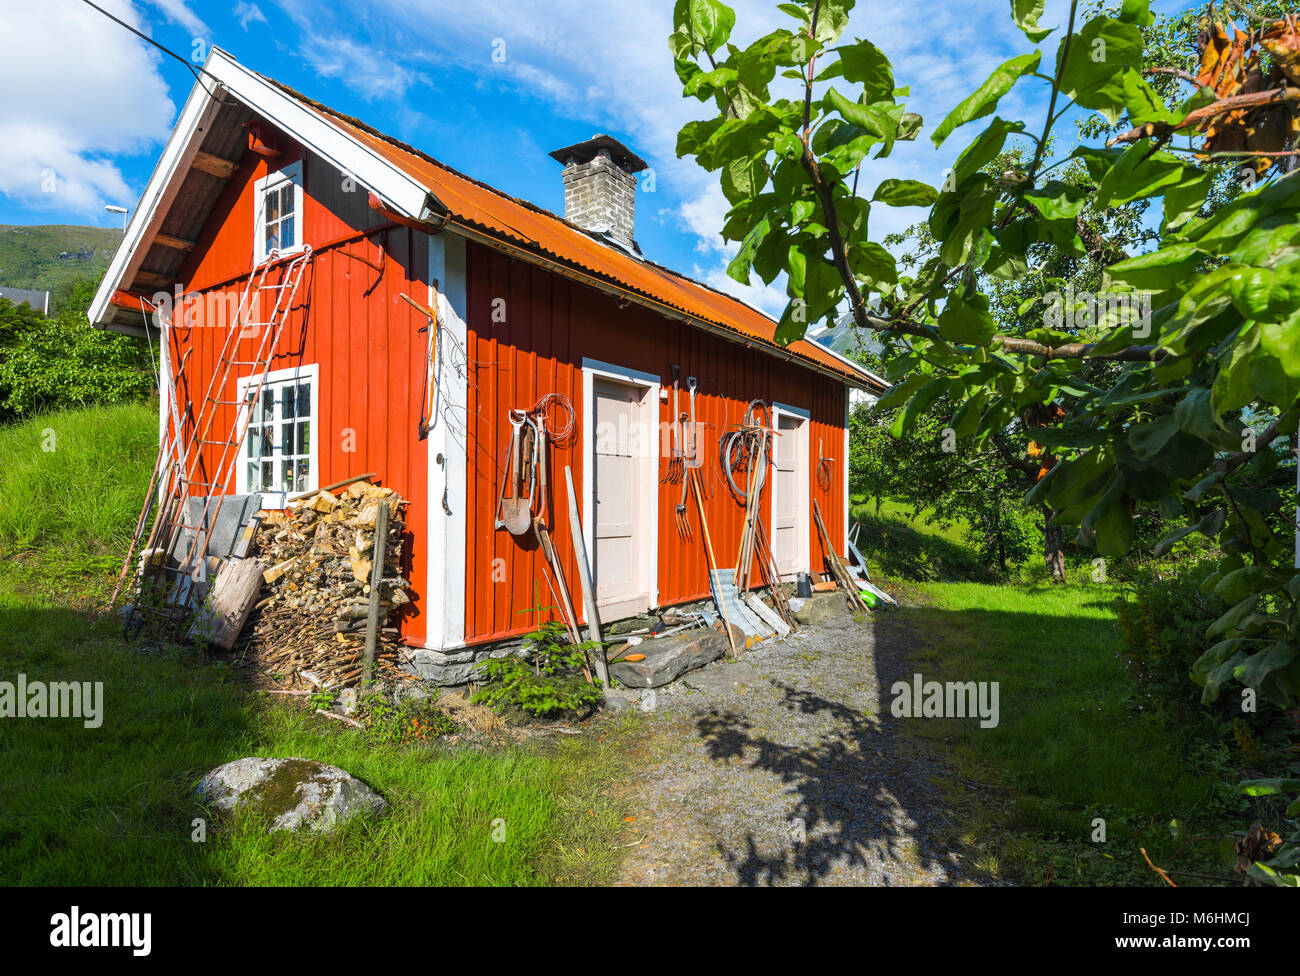 red shed and fruit tree, Norway, orchard in the village Balestrand, Esefjord, Sognefjord - Stock Image